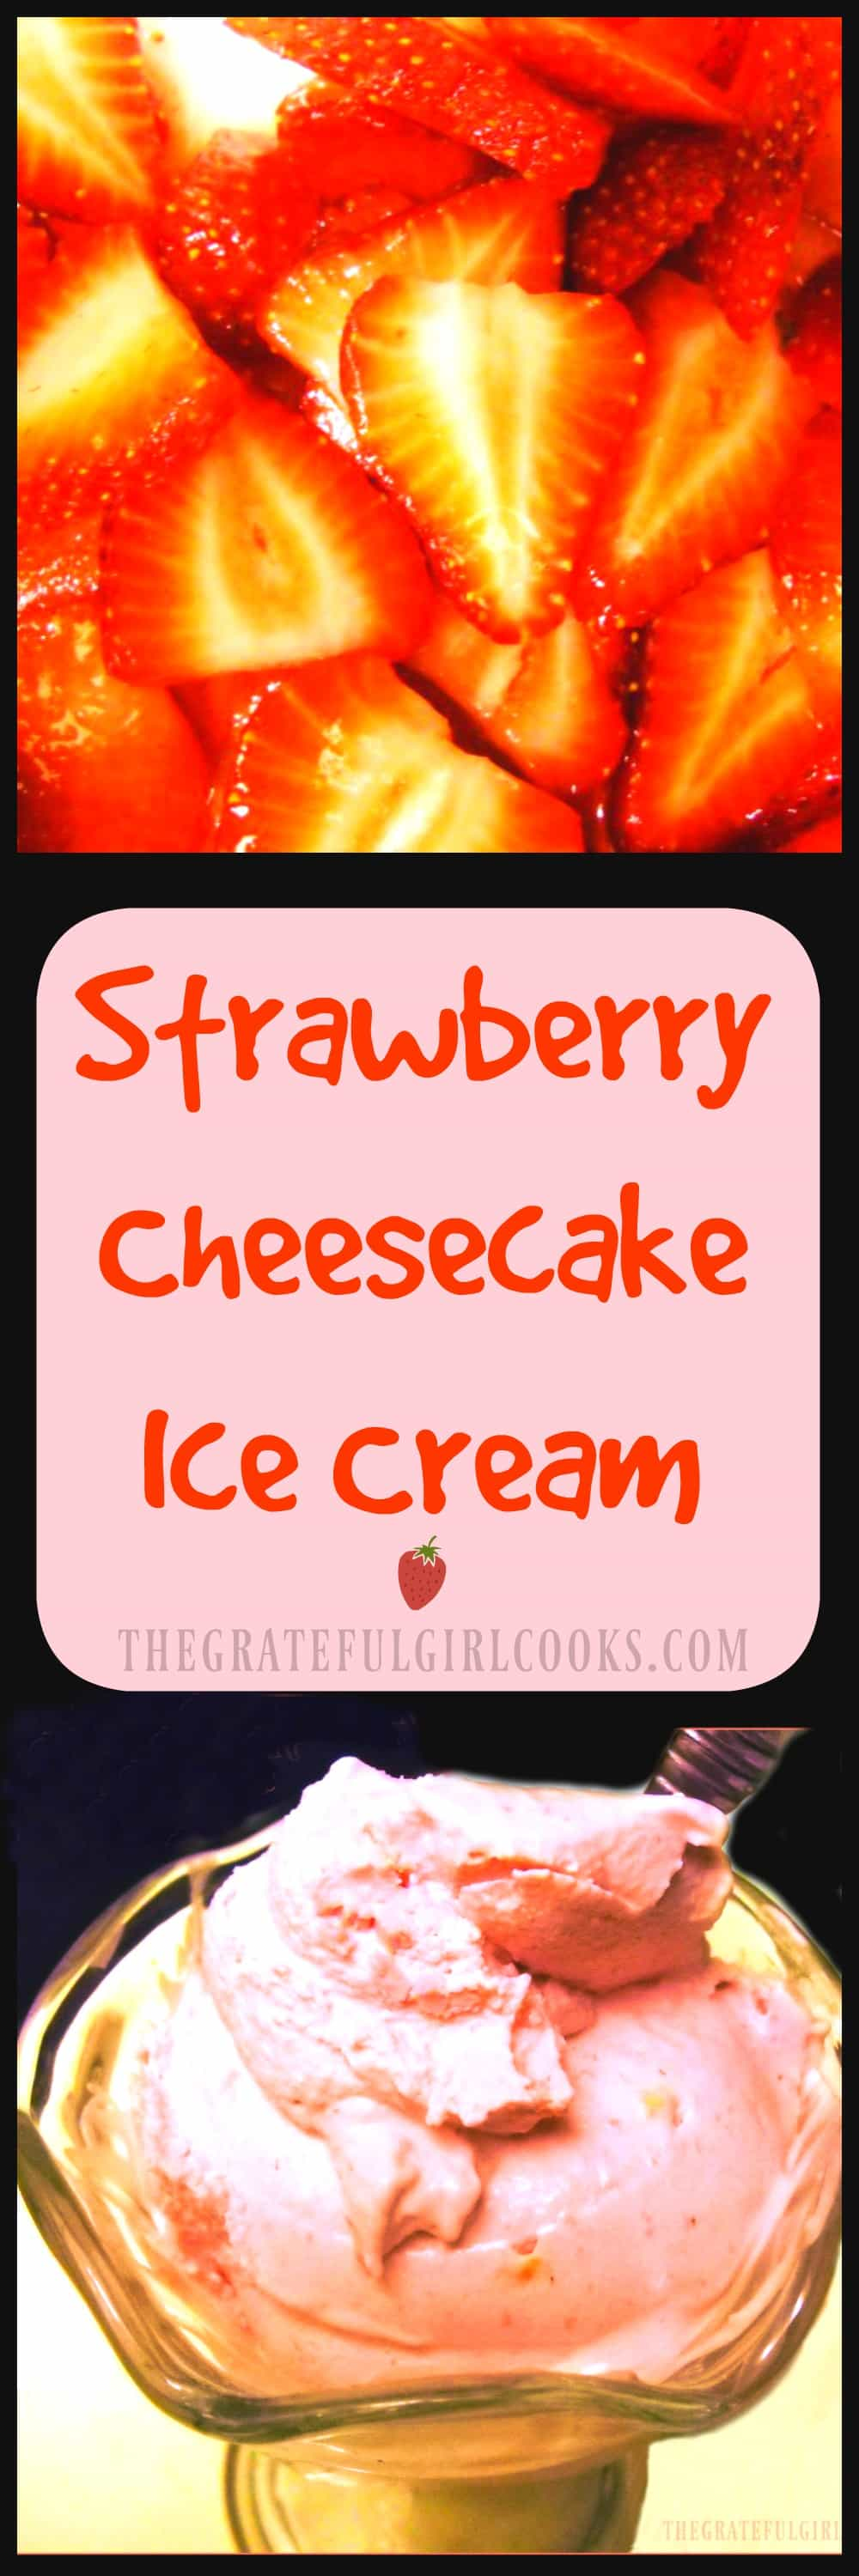 Strawberry Cheesecake Ice Cream / The Grateful Girl Cooks! Simple to prepare homemade ice cream... and it is delicious!